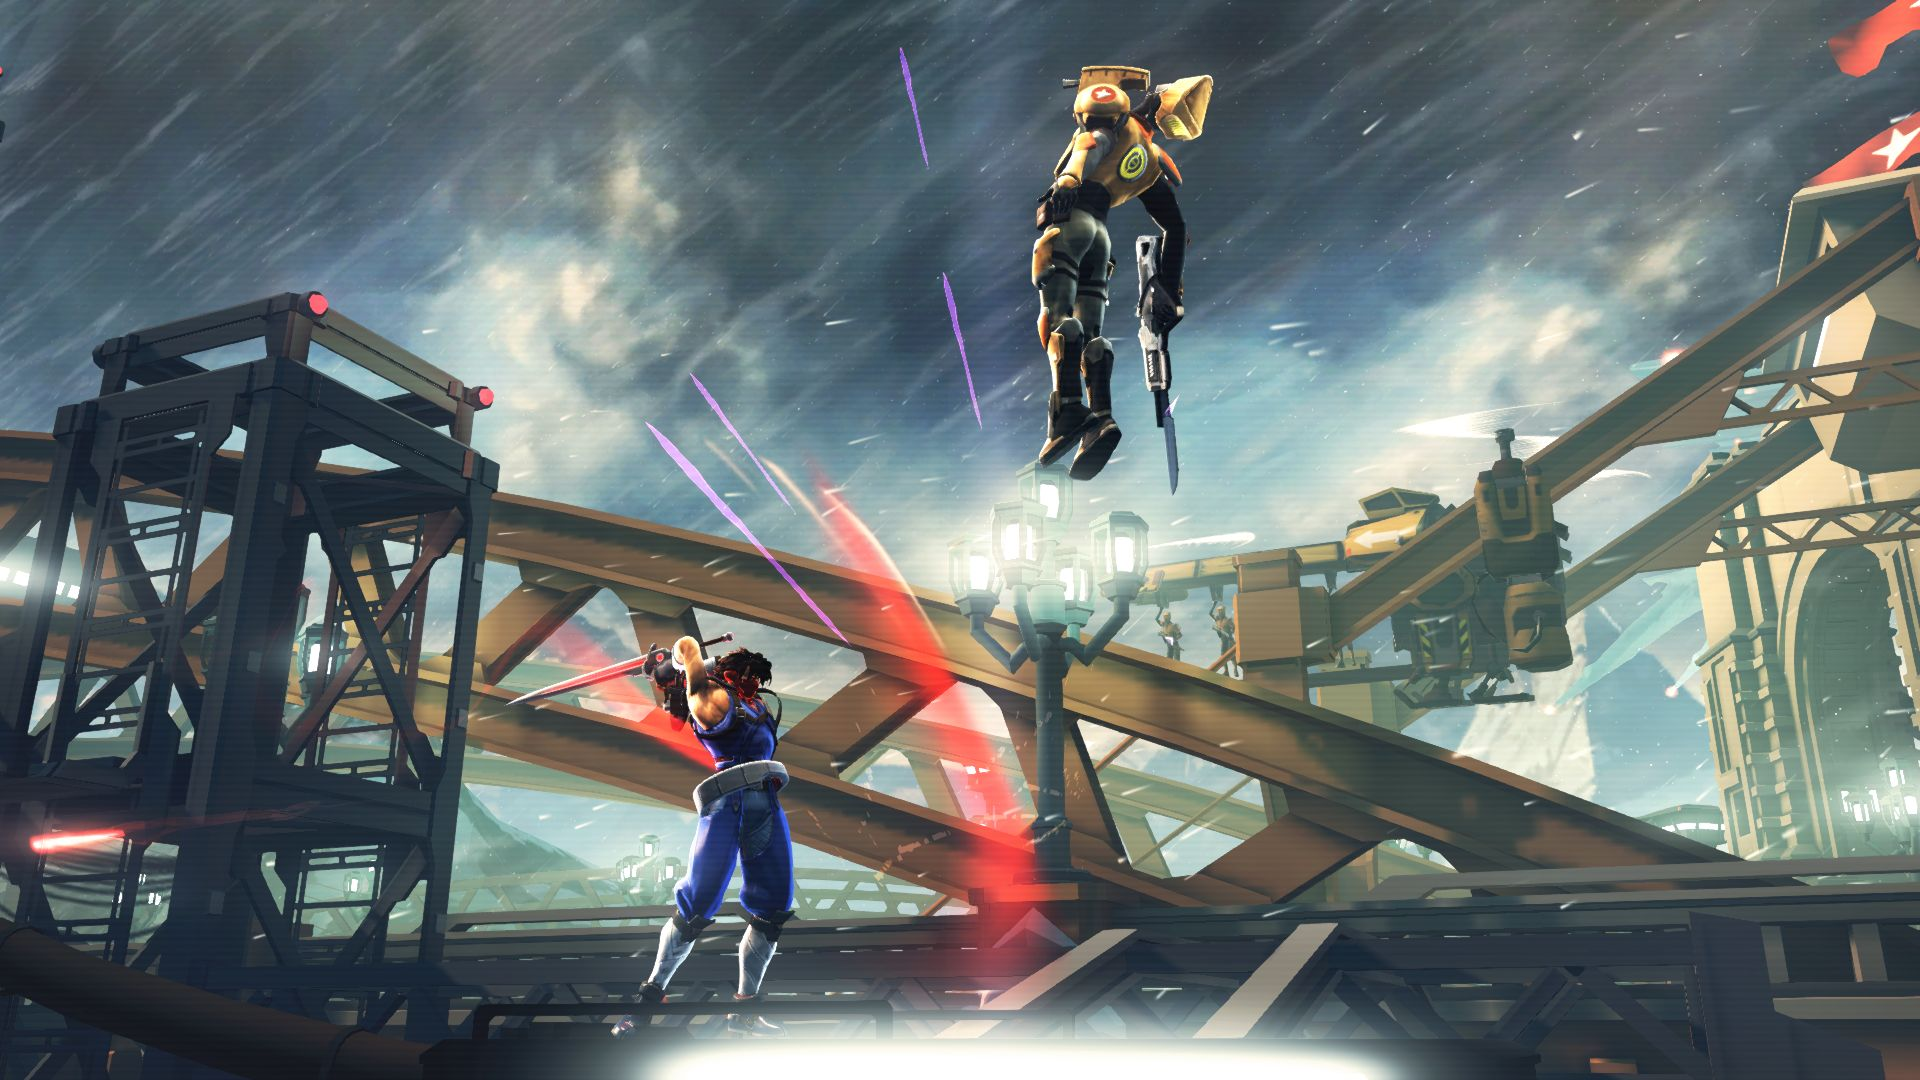 Strider Review: A Cut Above